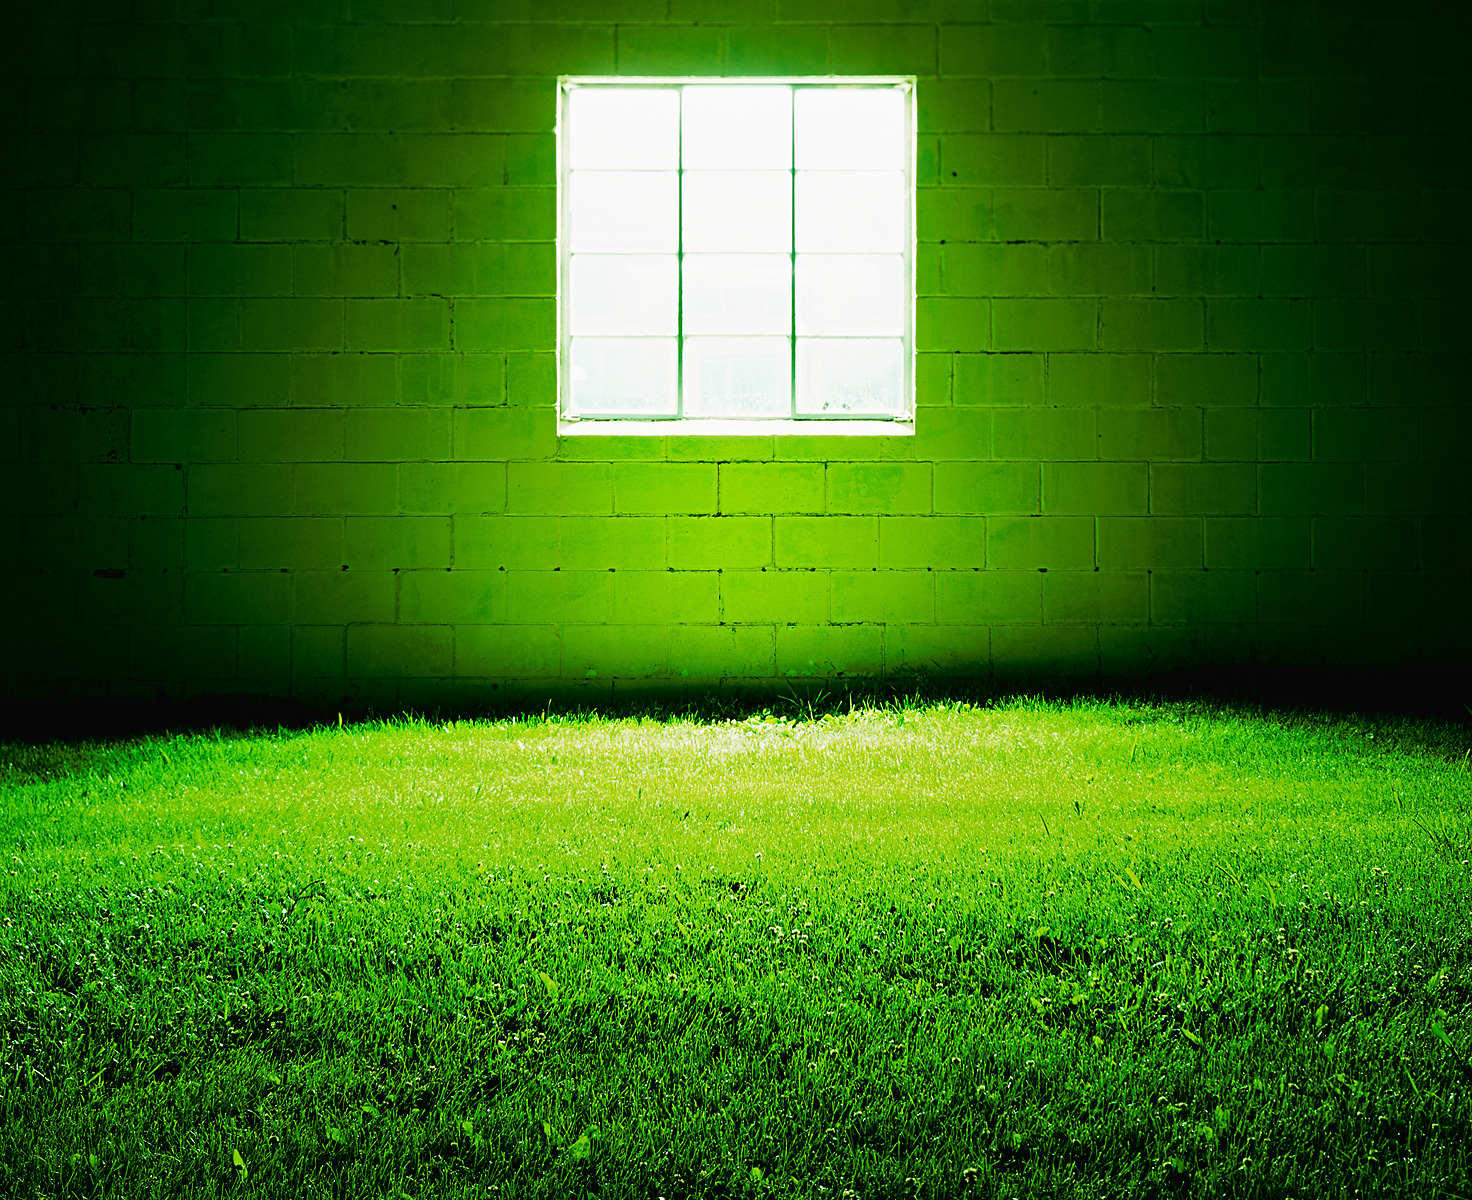 green_grass_room